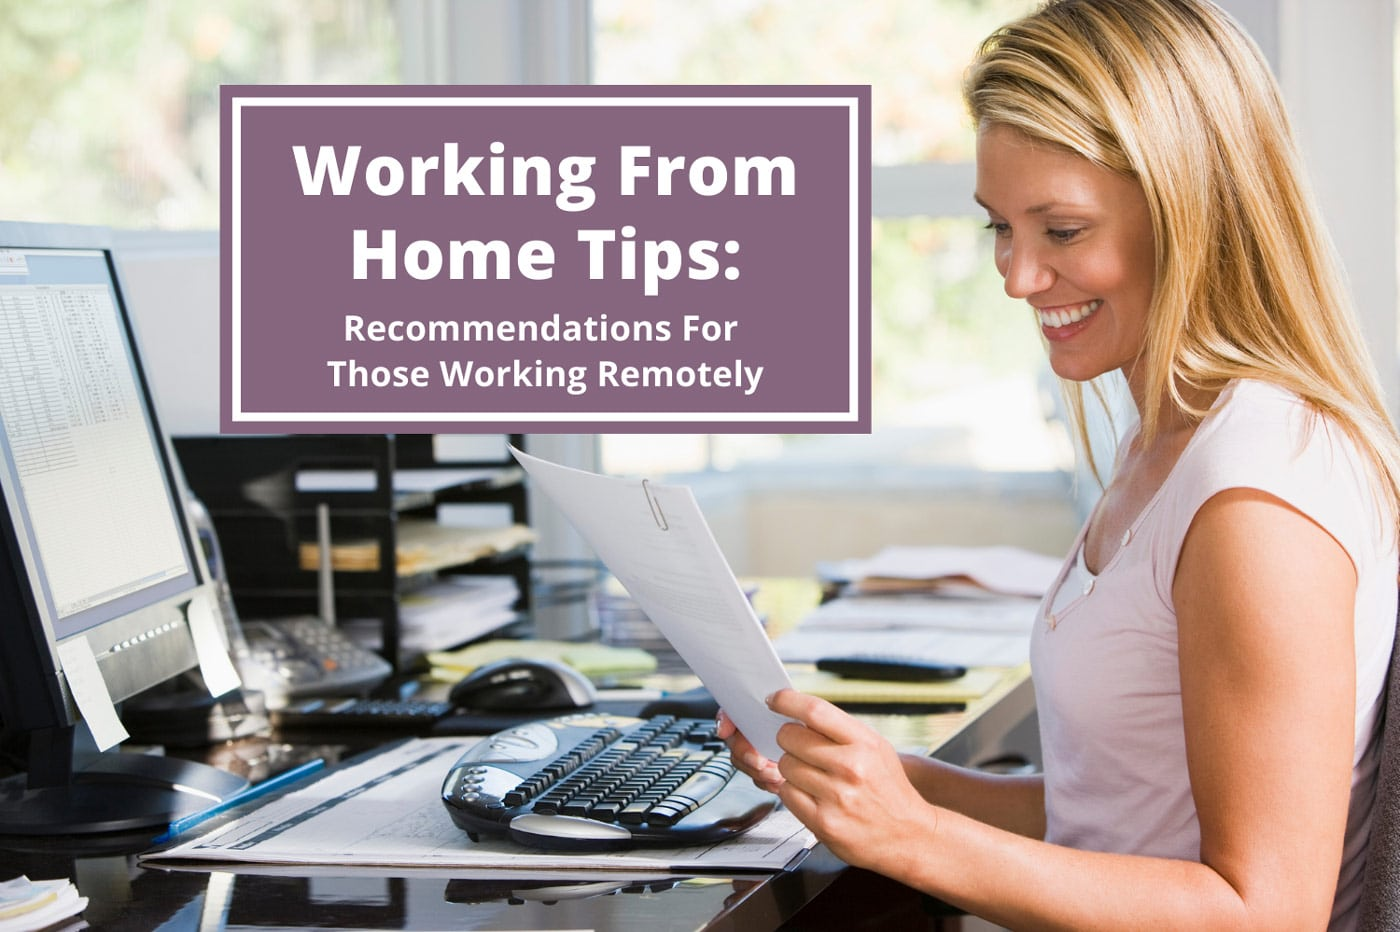 Working From Home Tips: Recommendations For Those Working Remotely